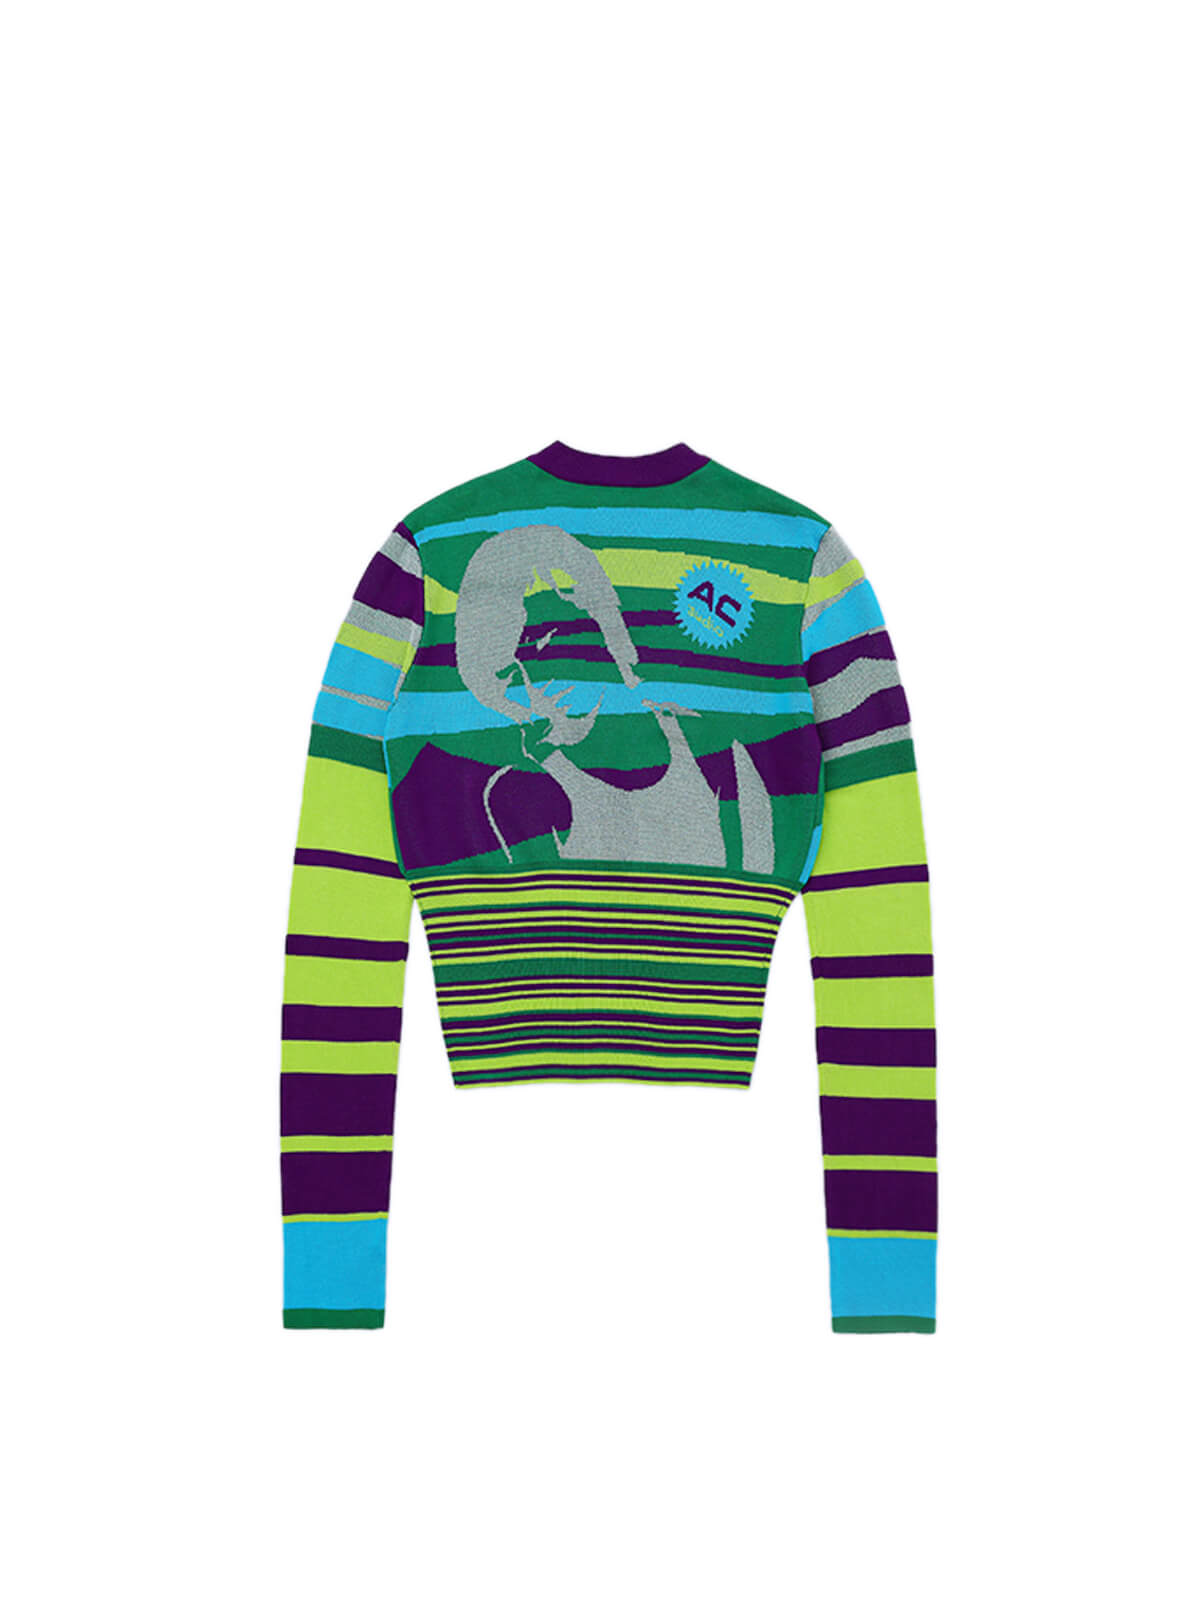 ANGUS RECORDS AND TAPES LONG SLEEVE KNIT TOP